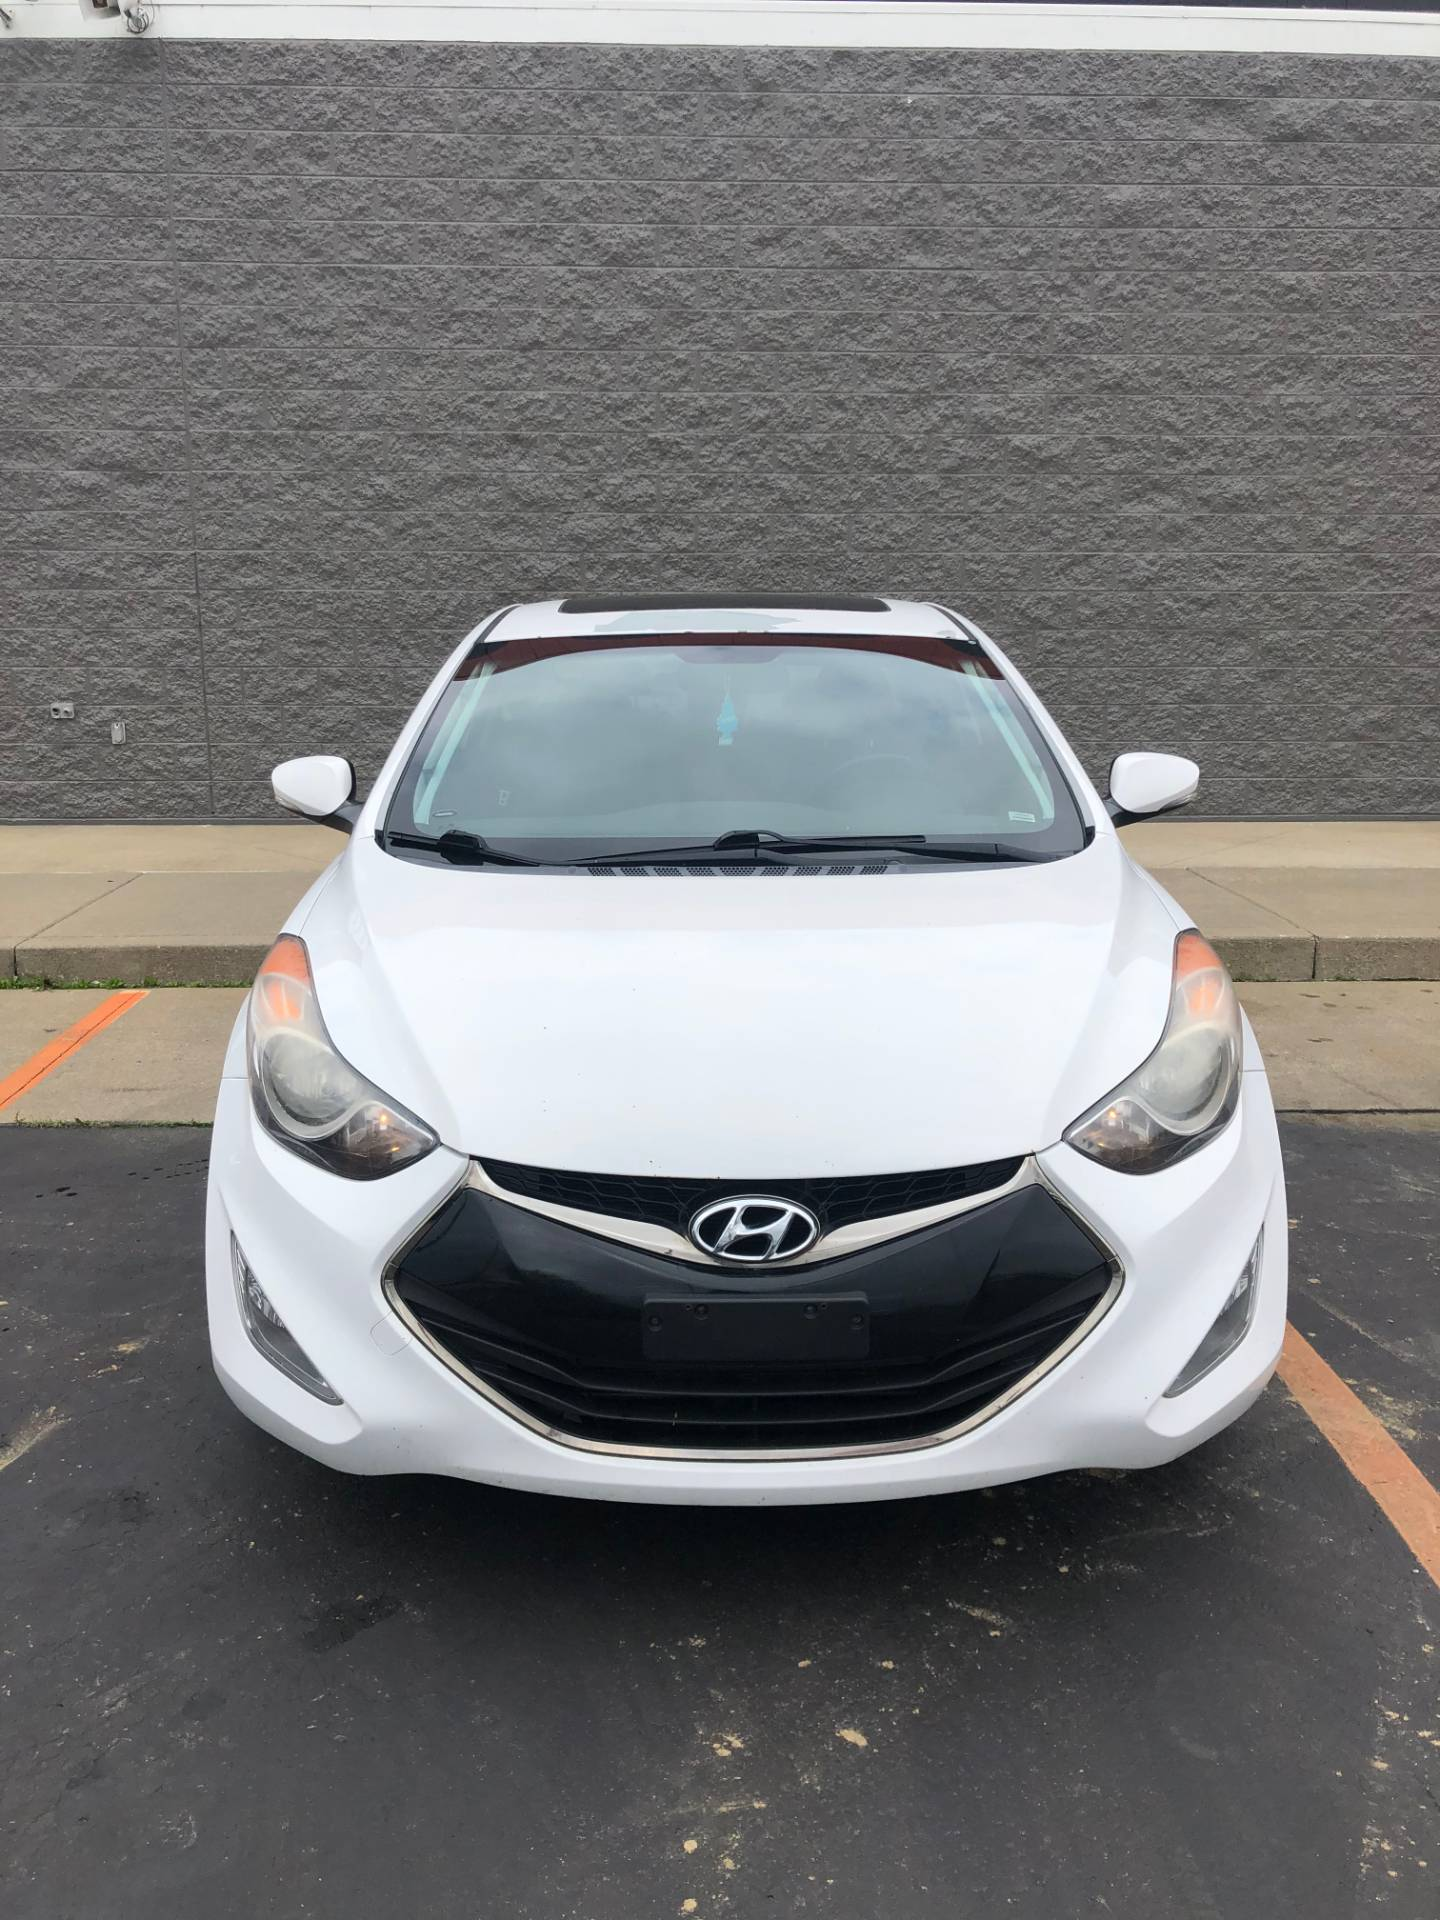 2013 Hyundai ELANTRA in Marion, Illinois - Photo 2